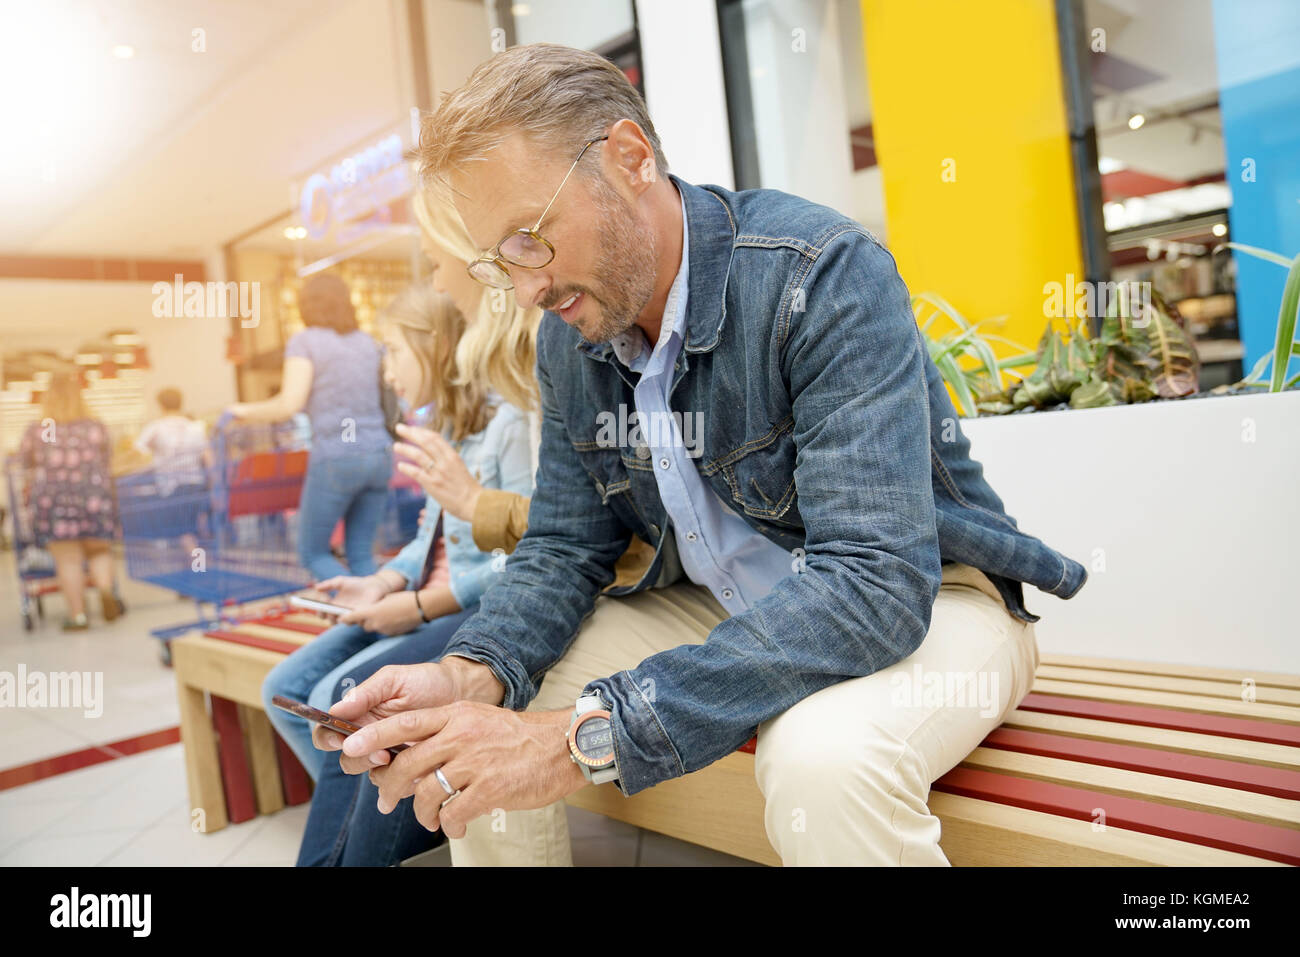 Homme assis sur banc public dans shopping mall Photo Stock